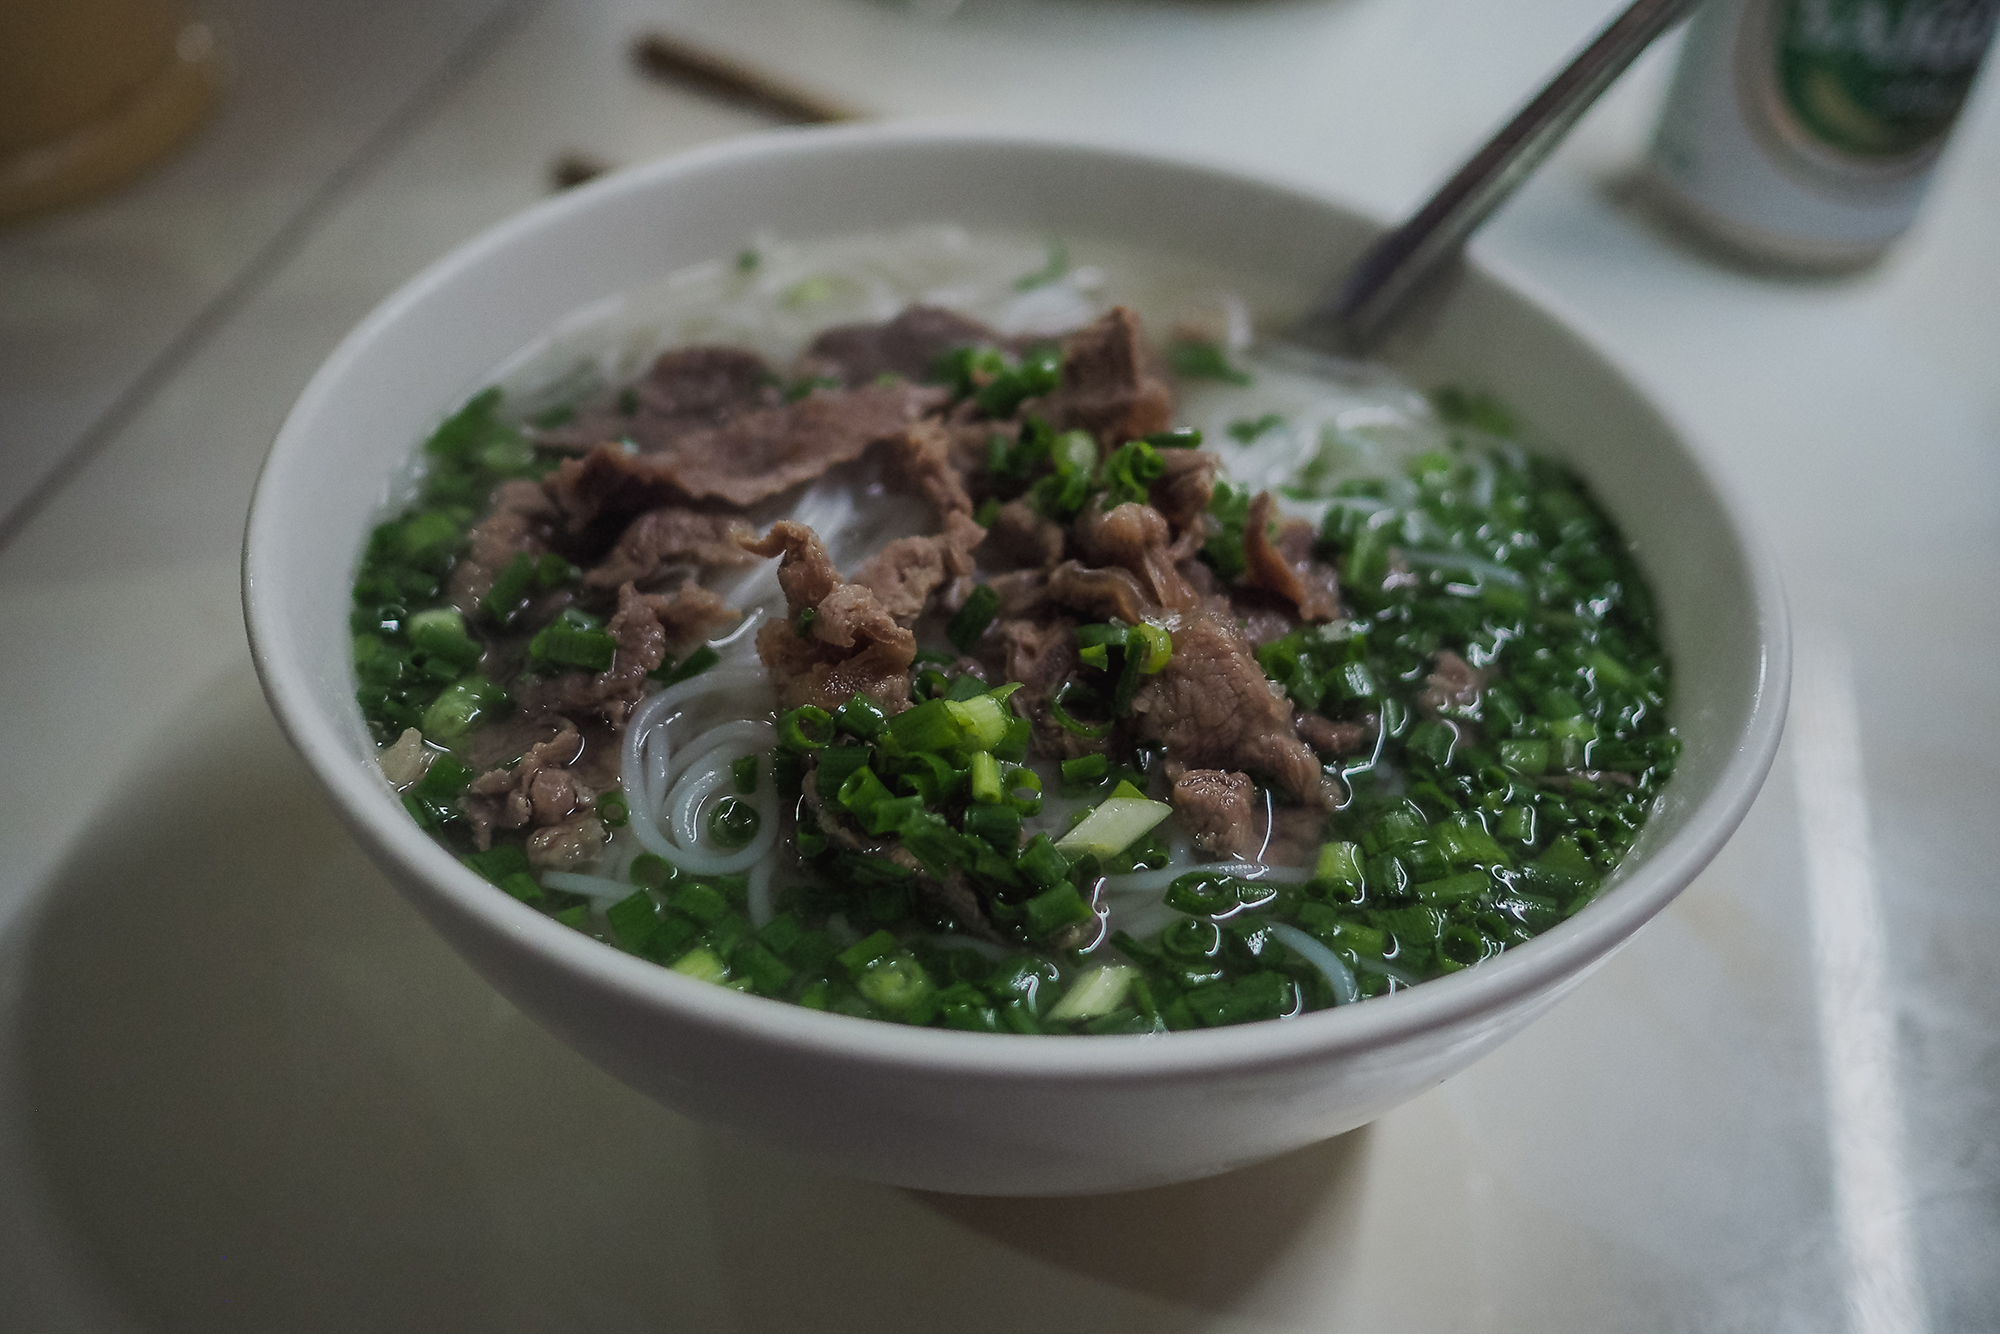 Pho, le bouillon traditionnel du vietnam